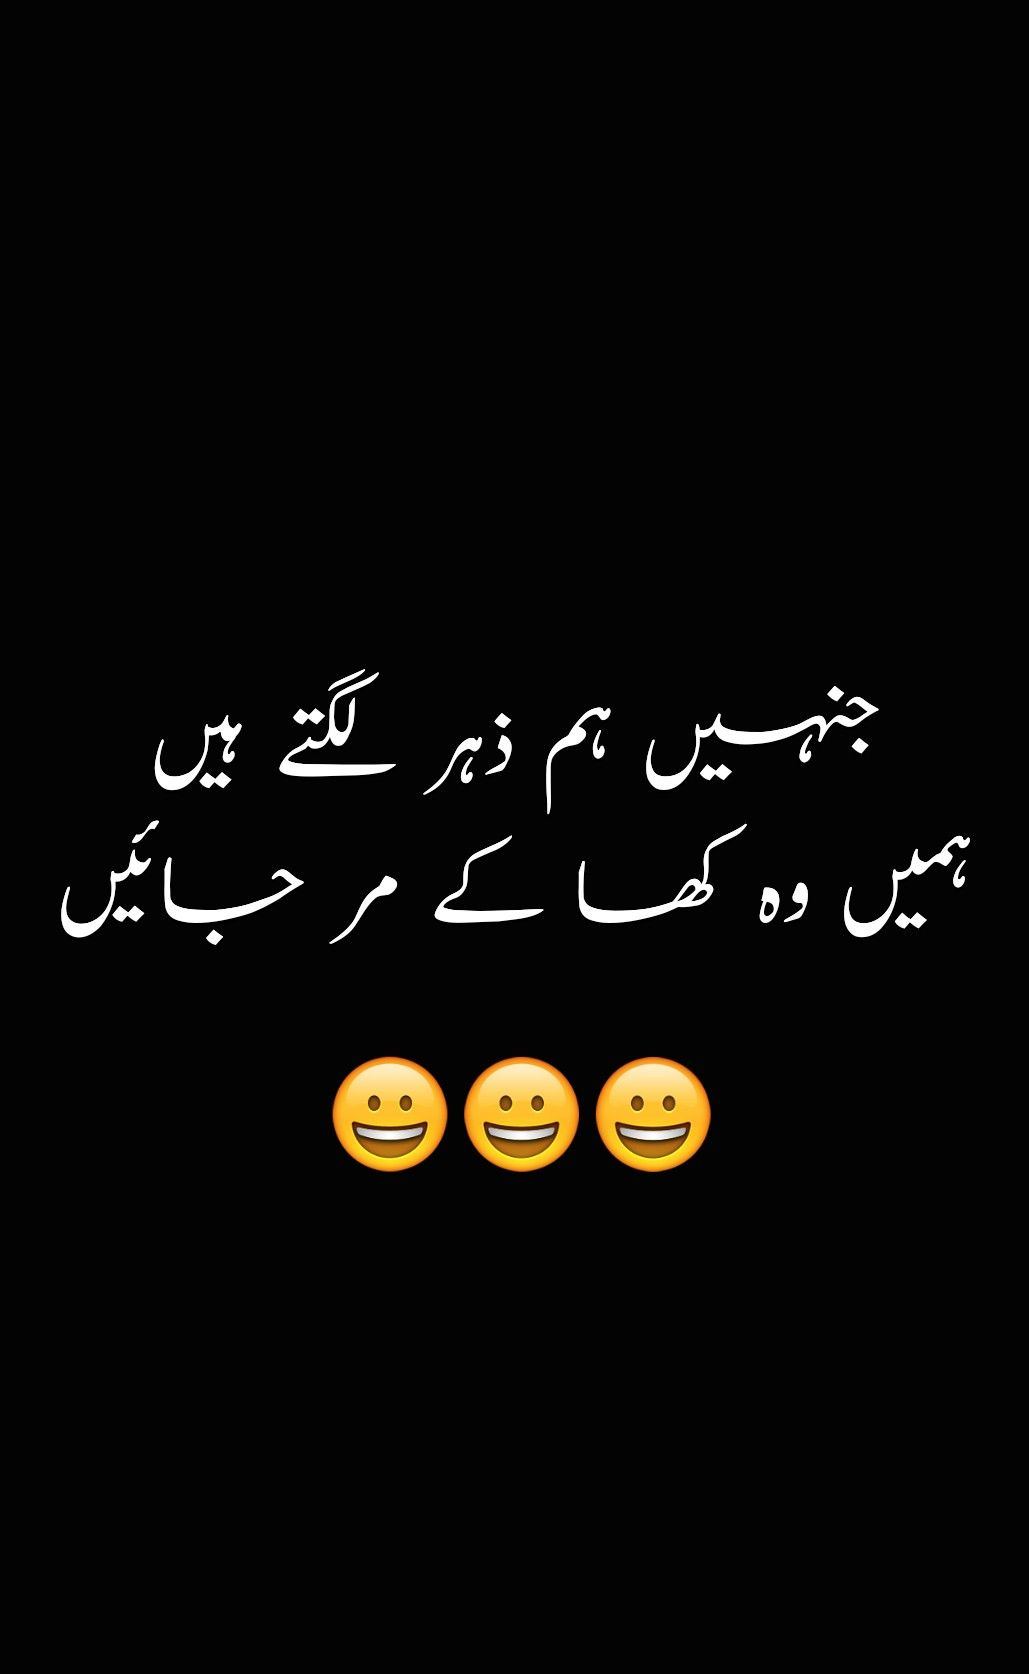 Pin By Gts For On Funny Quote Urdu Funny Quotes Cute Funny Quotes Poetry Funny